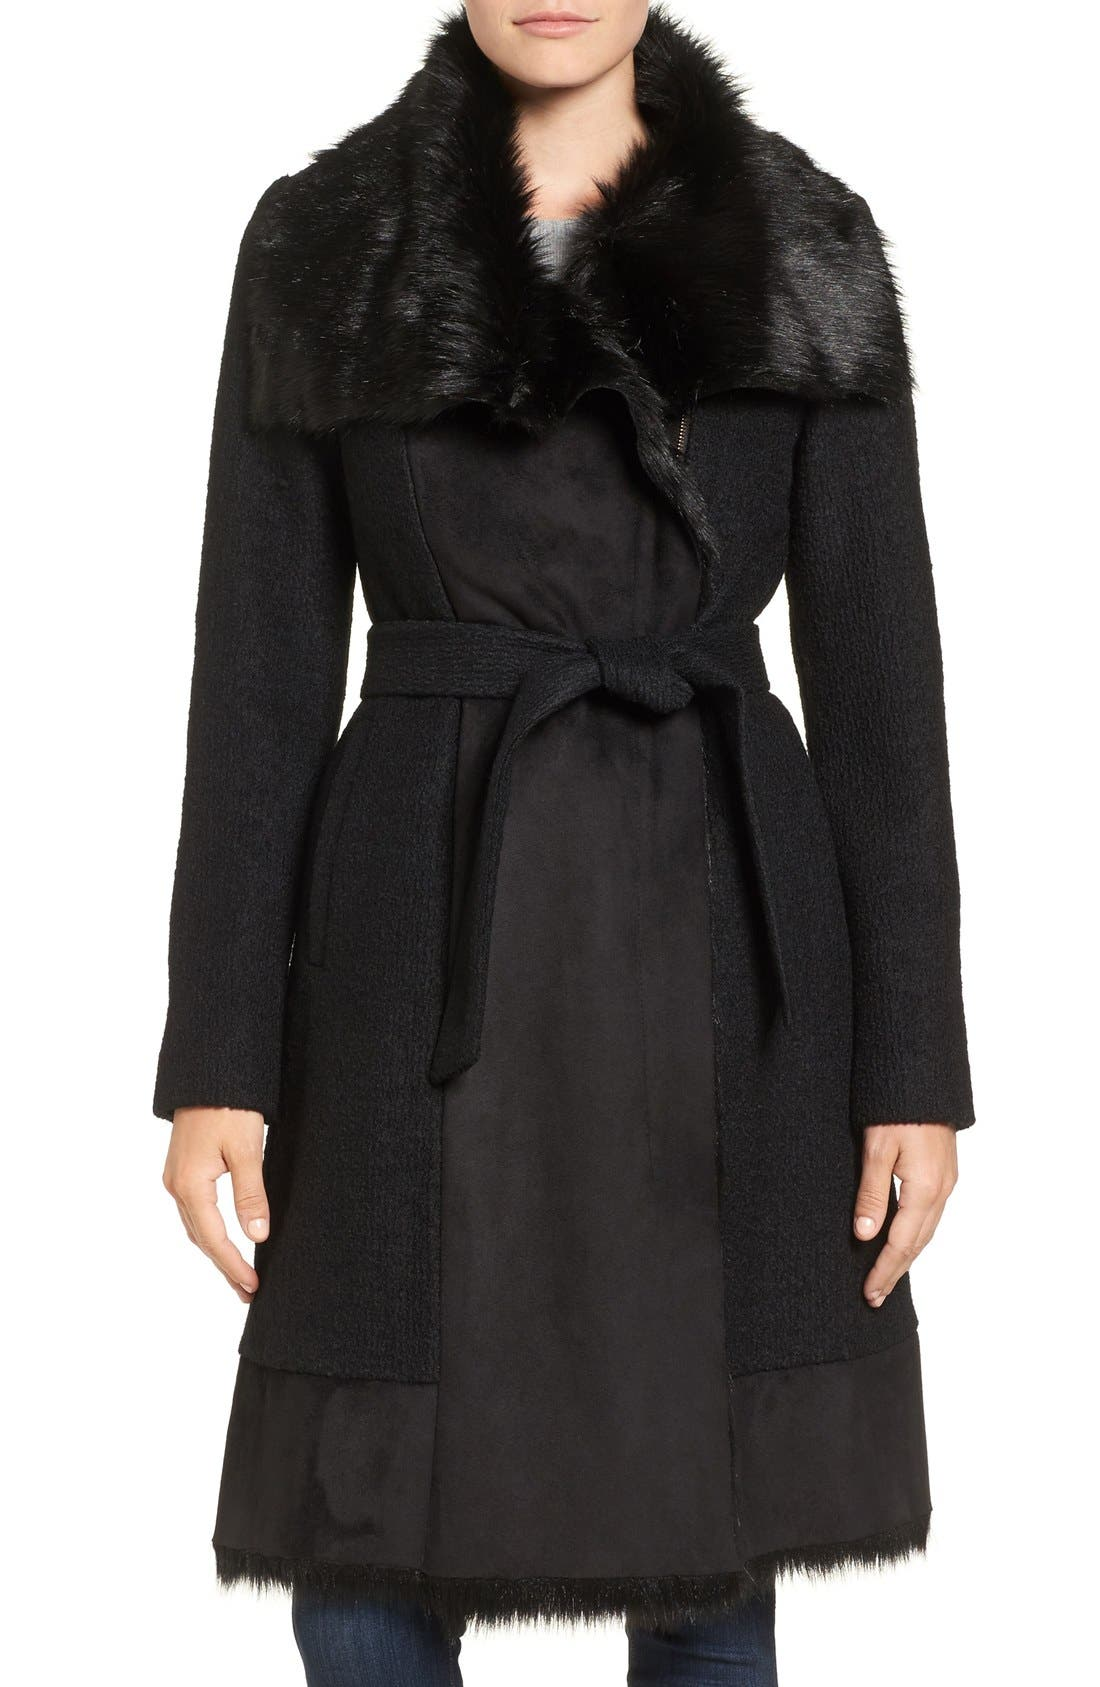 Main Image - Vince Camuto Faux Shearling Trim Belted Wool Blend Long Coat